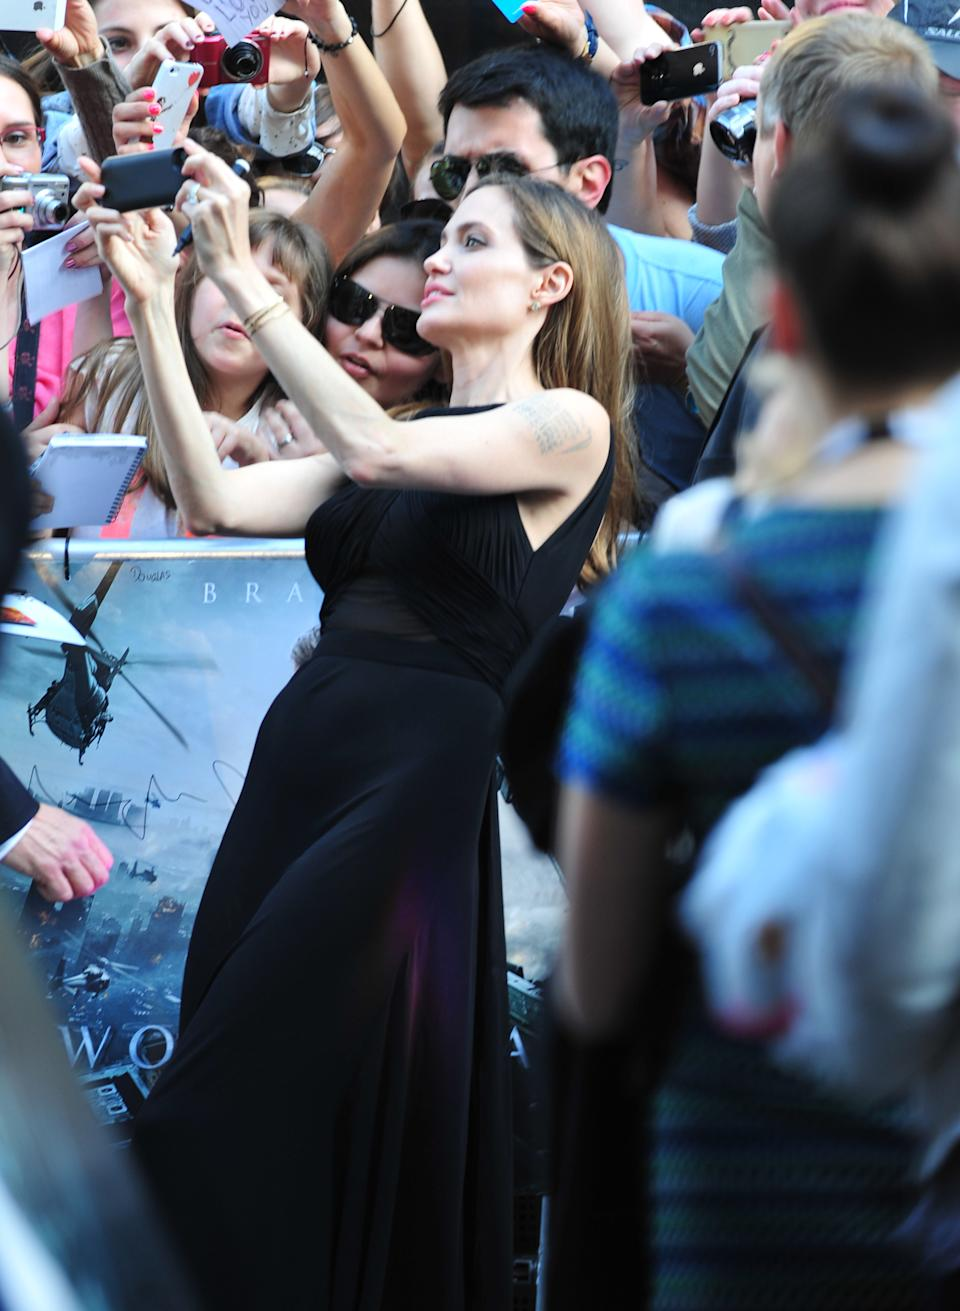 Angelina Jolie greets fans at the World Premiere of 'World War Z' at the Empire Cinema in London on Sunday June 2nd, 2013. (Photo by Jon Furniss/Invision/AP Images)